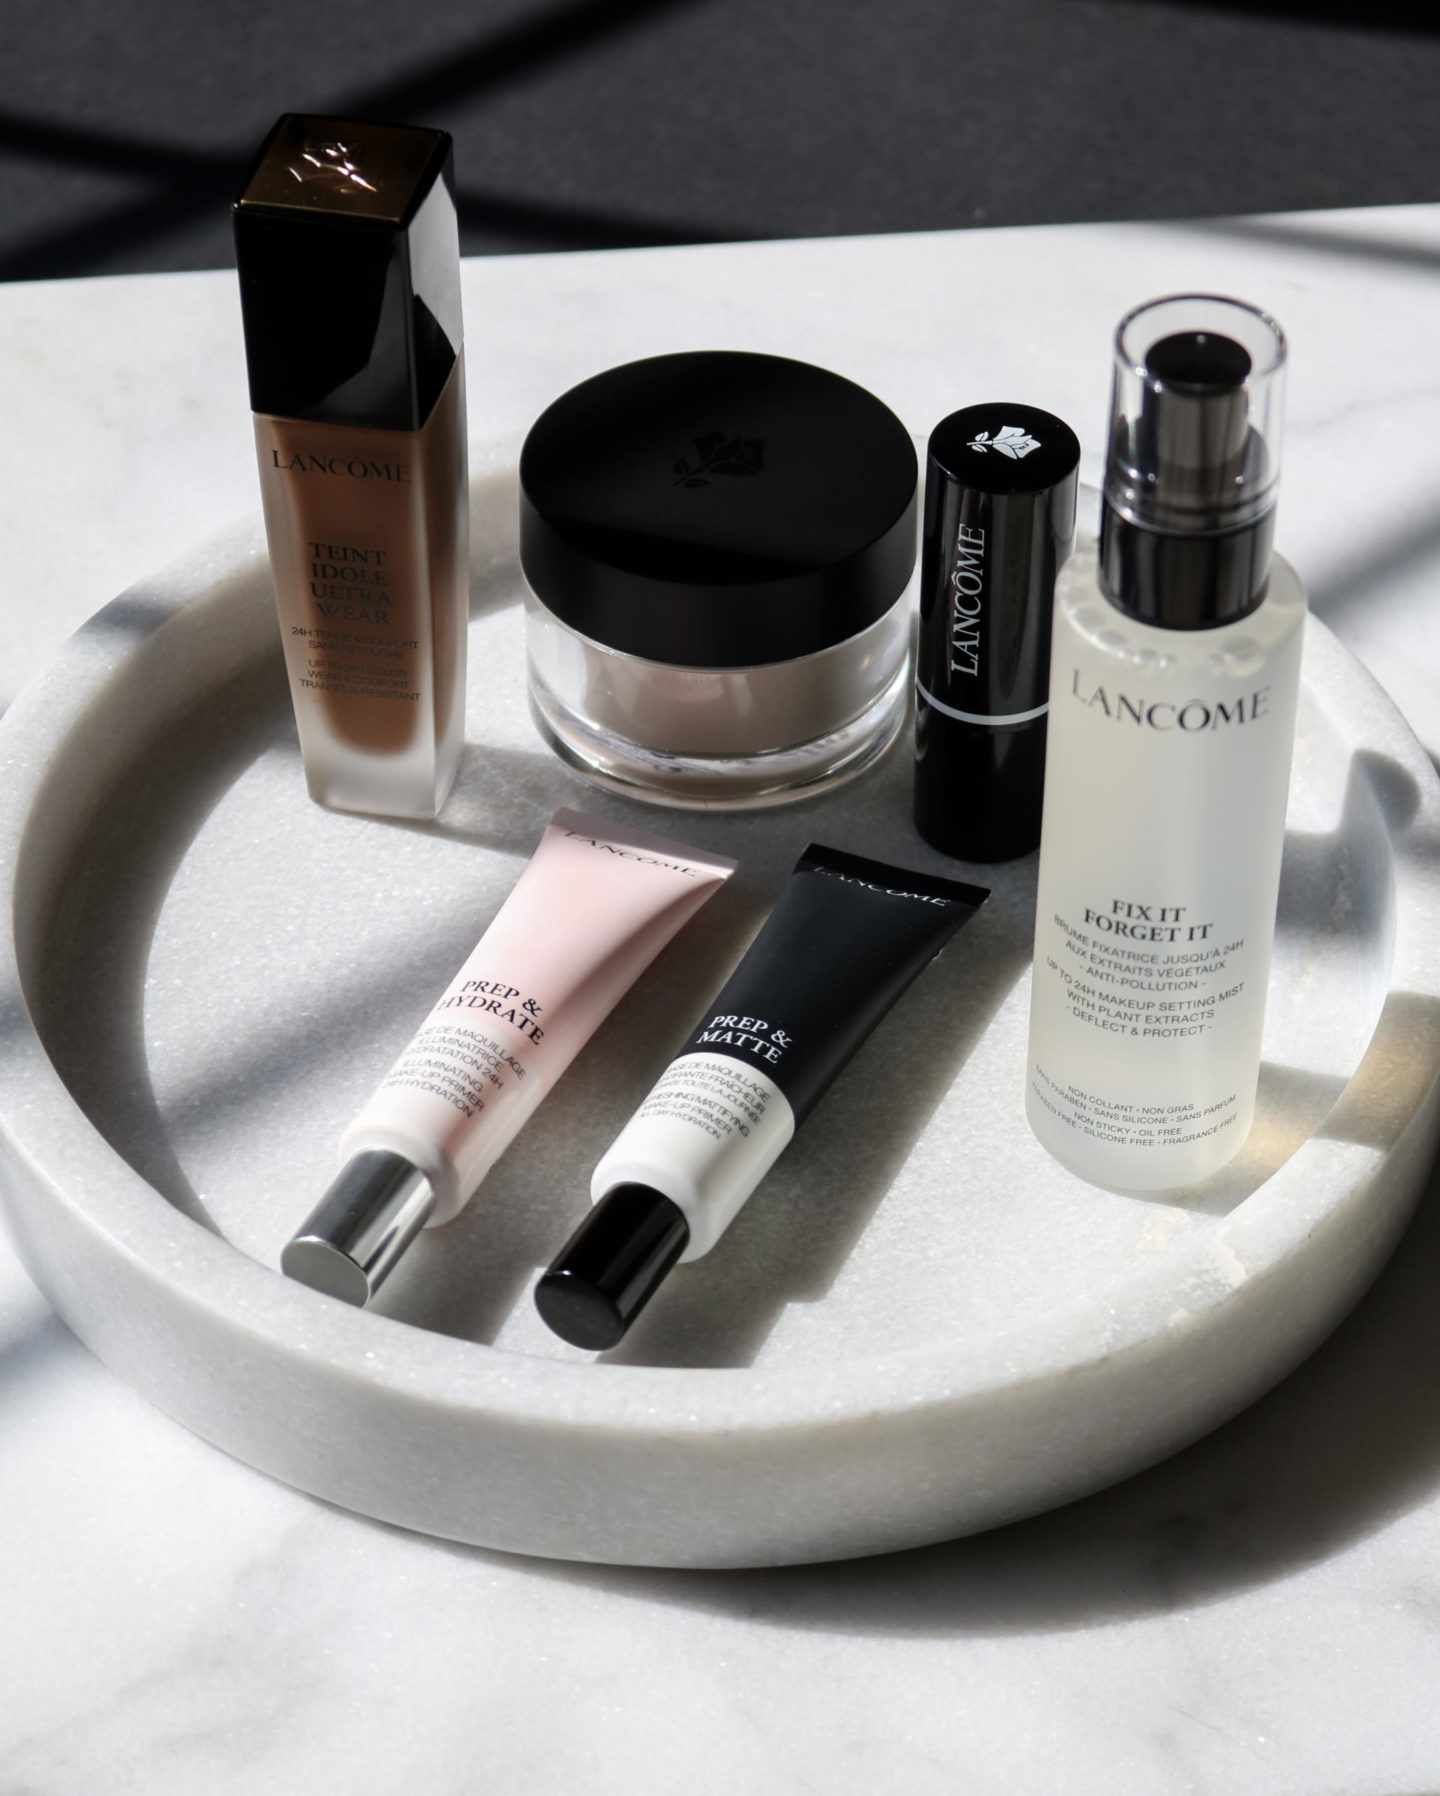 Prepare To Be Obsessed With Lancôme's New Releases – Life-Proof Collection